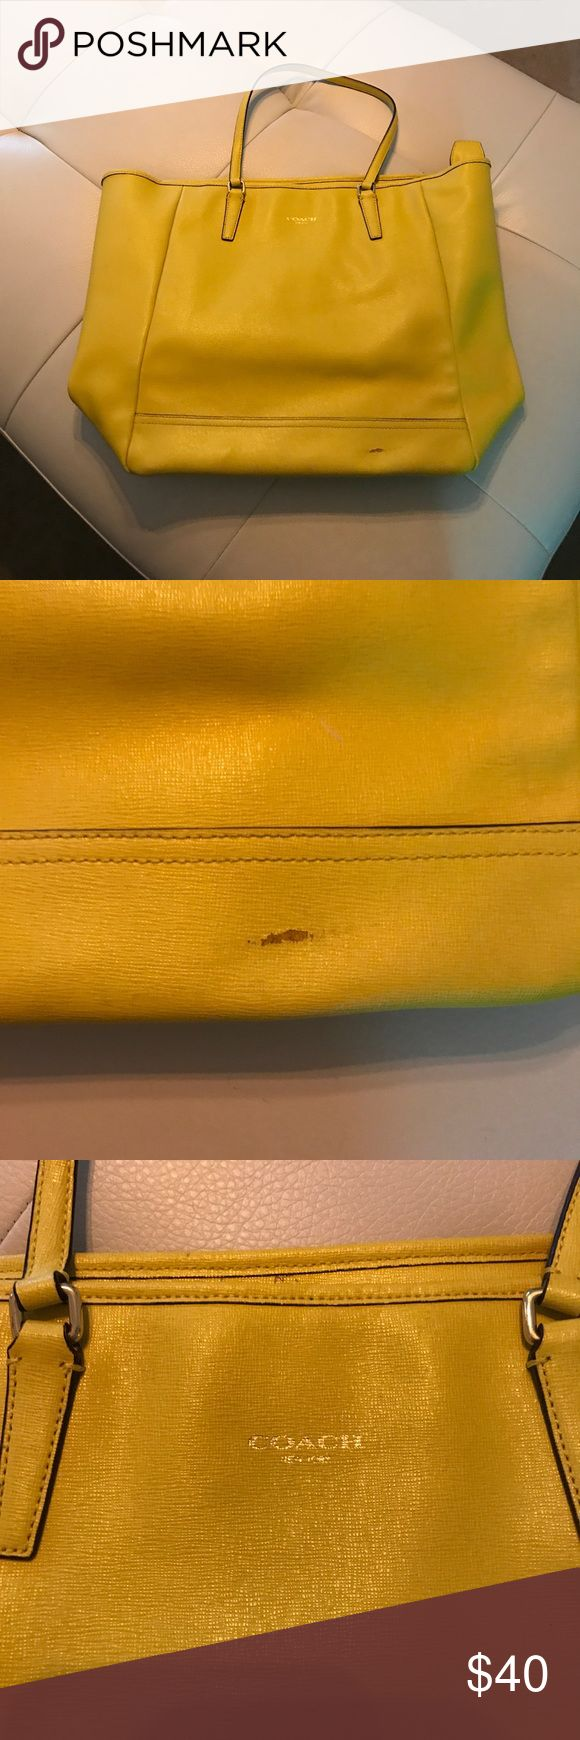 Yellow coach tote Well loved yellow bag. Flaw in front shown in picture. Lining also has lots of pen marks. Still a good bag though. Good for tailgating at hawkeye games Coach Bags Totes